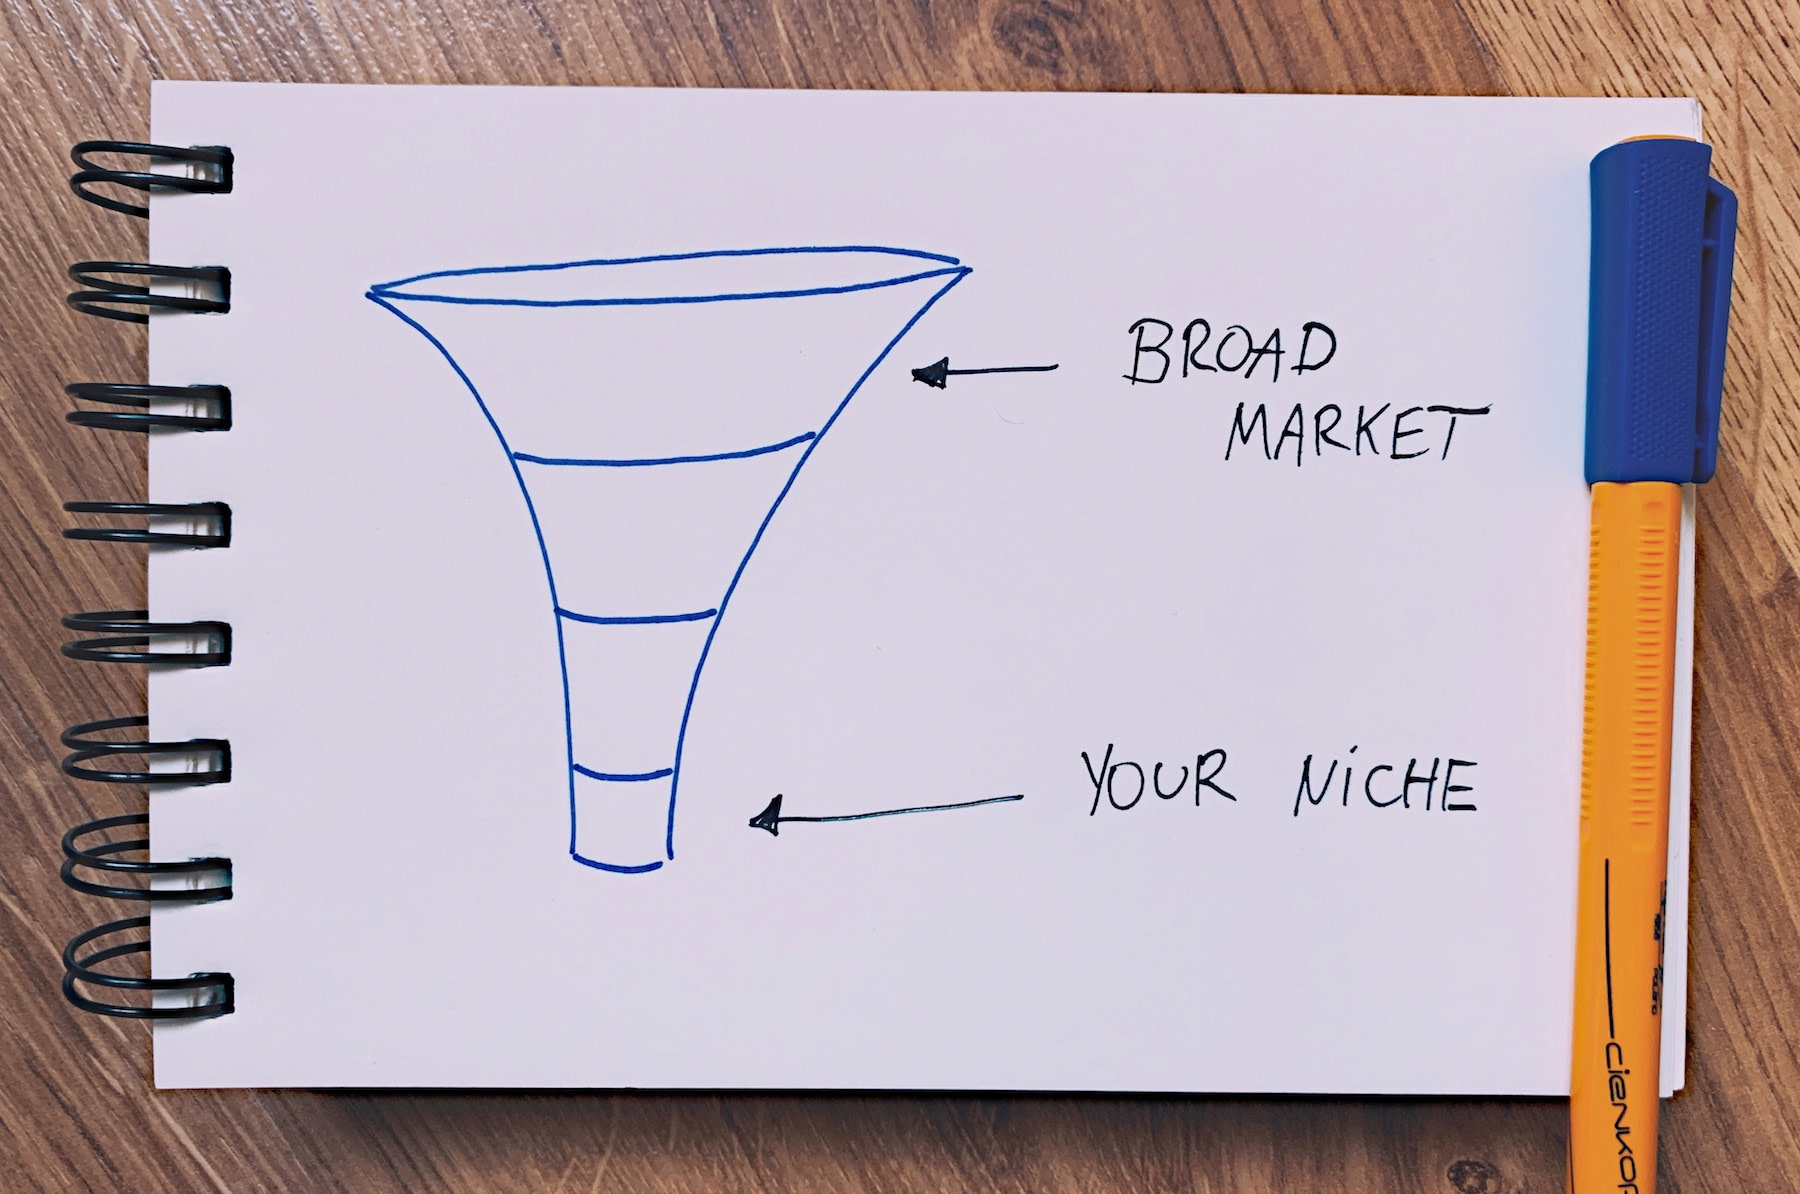 Your niche funnel to start eCommerce business